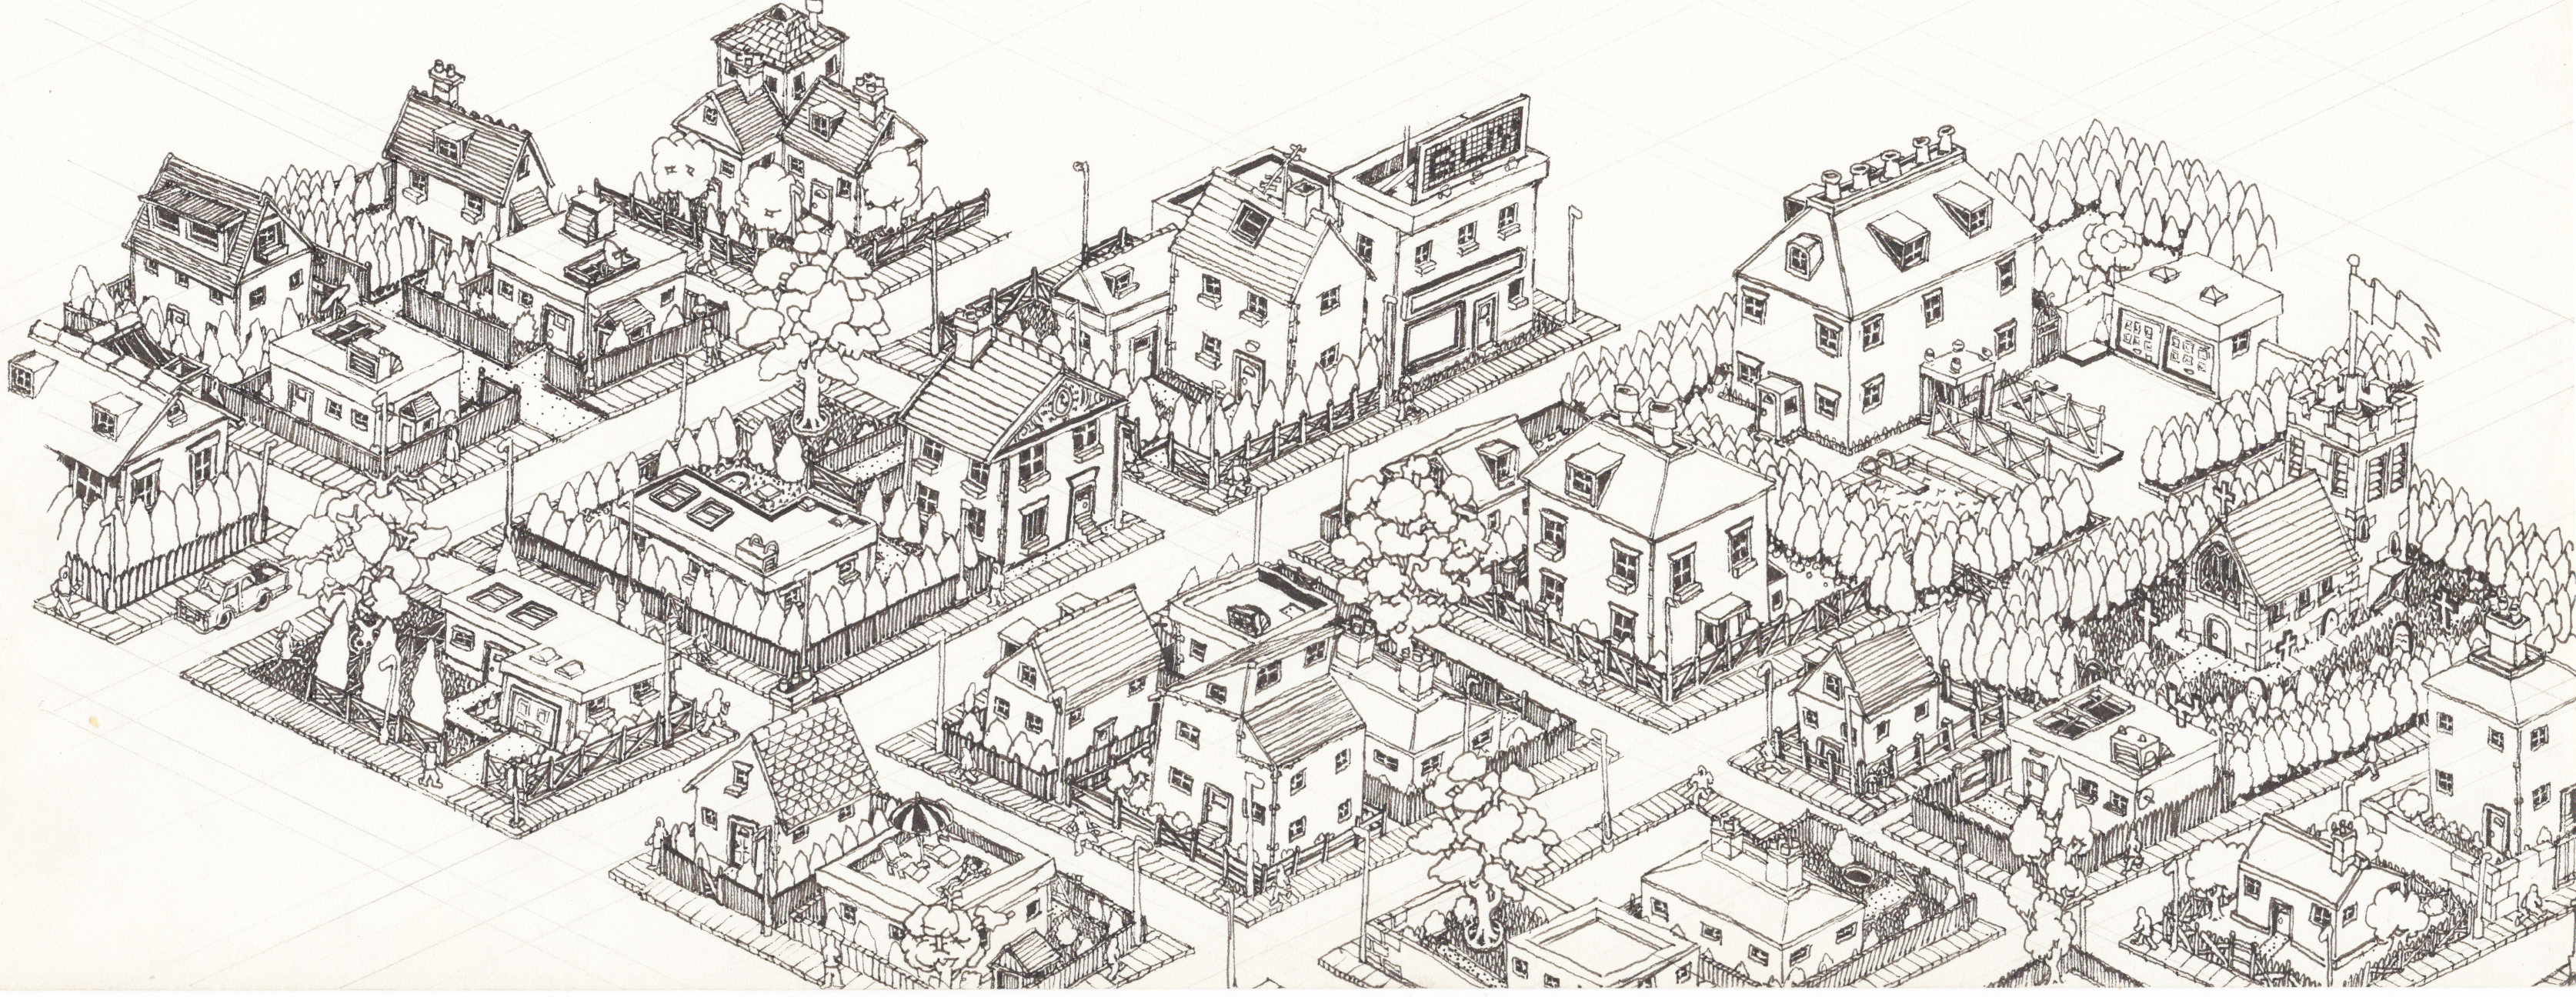 isometric townscape study